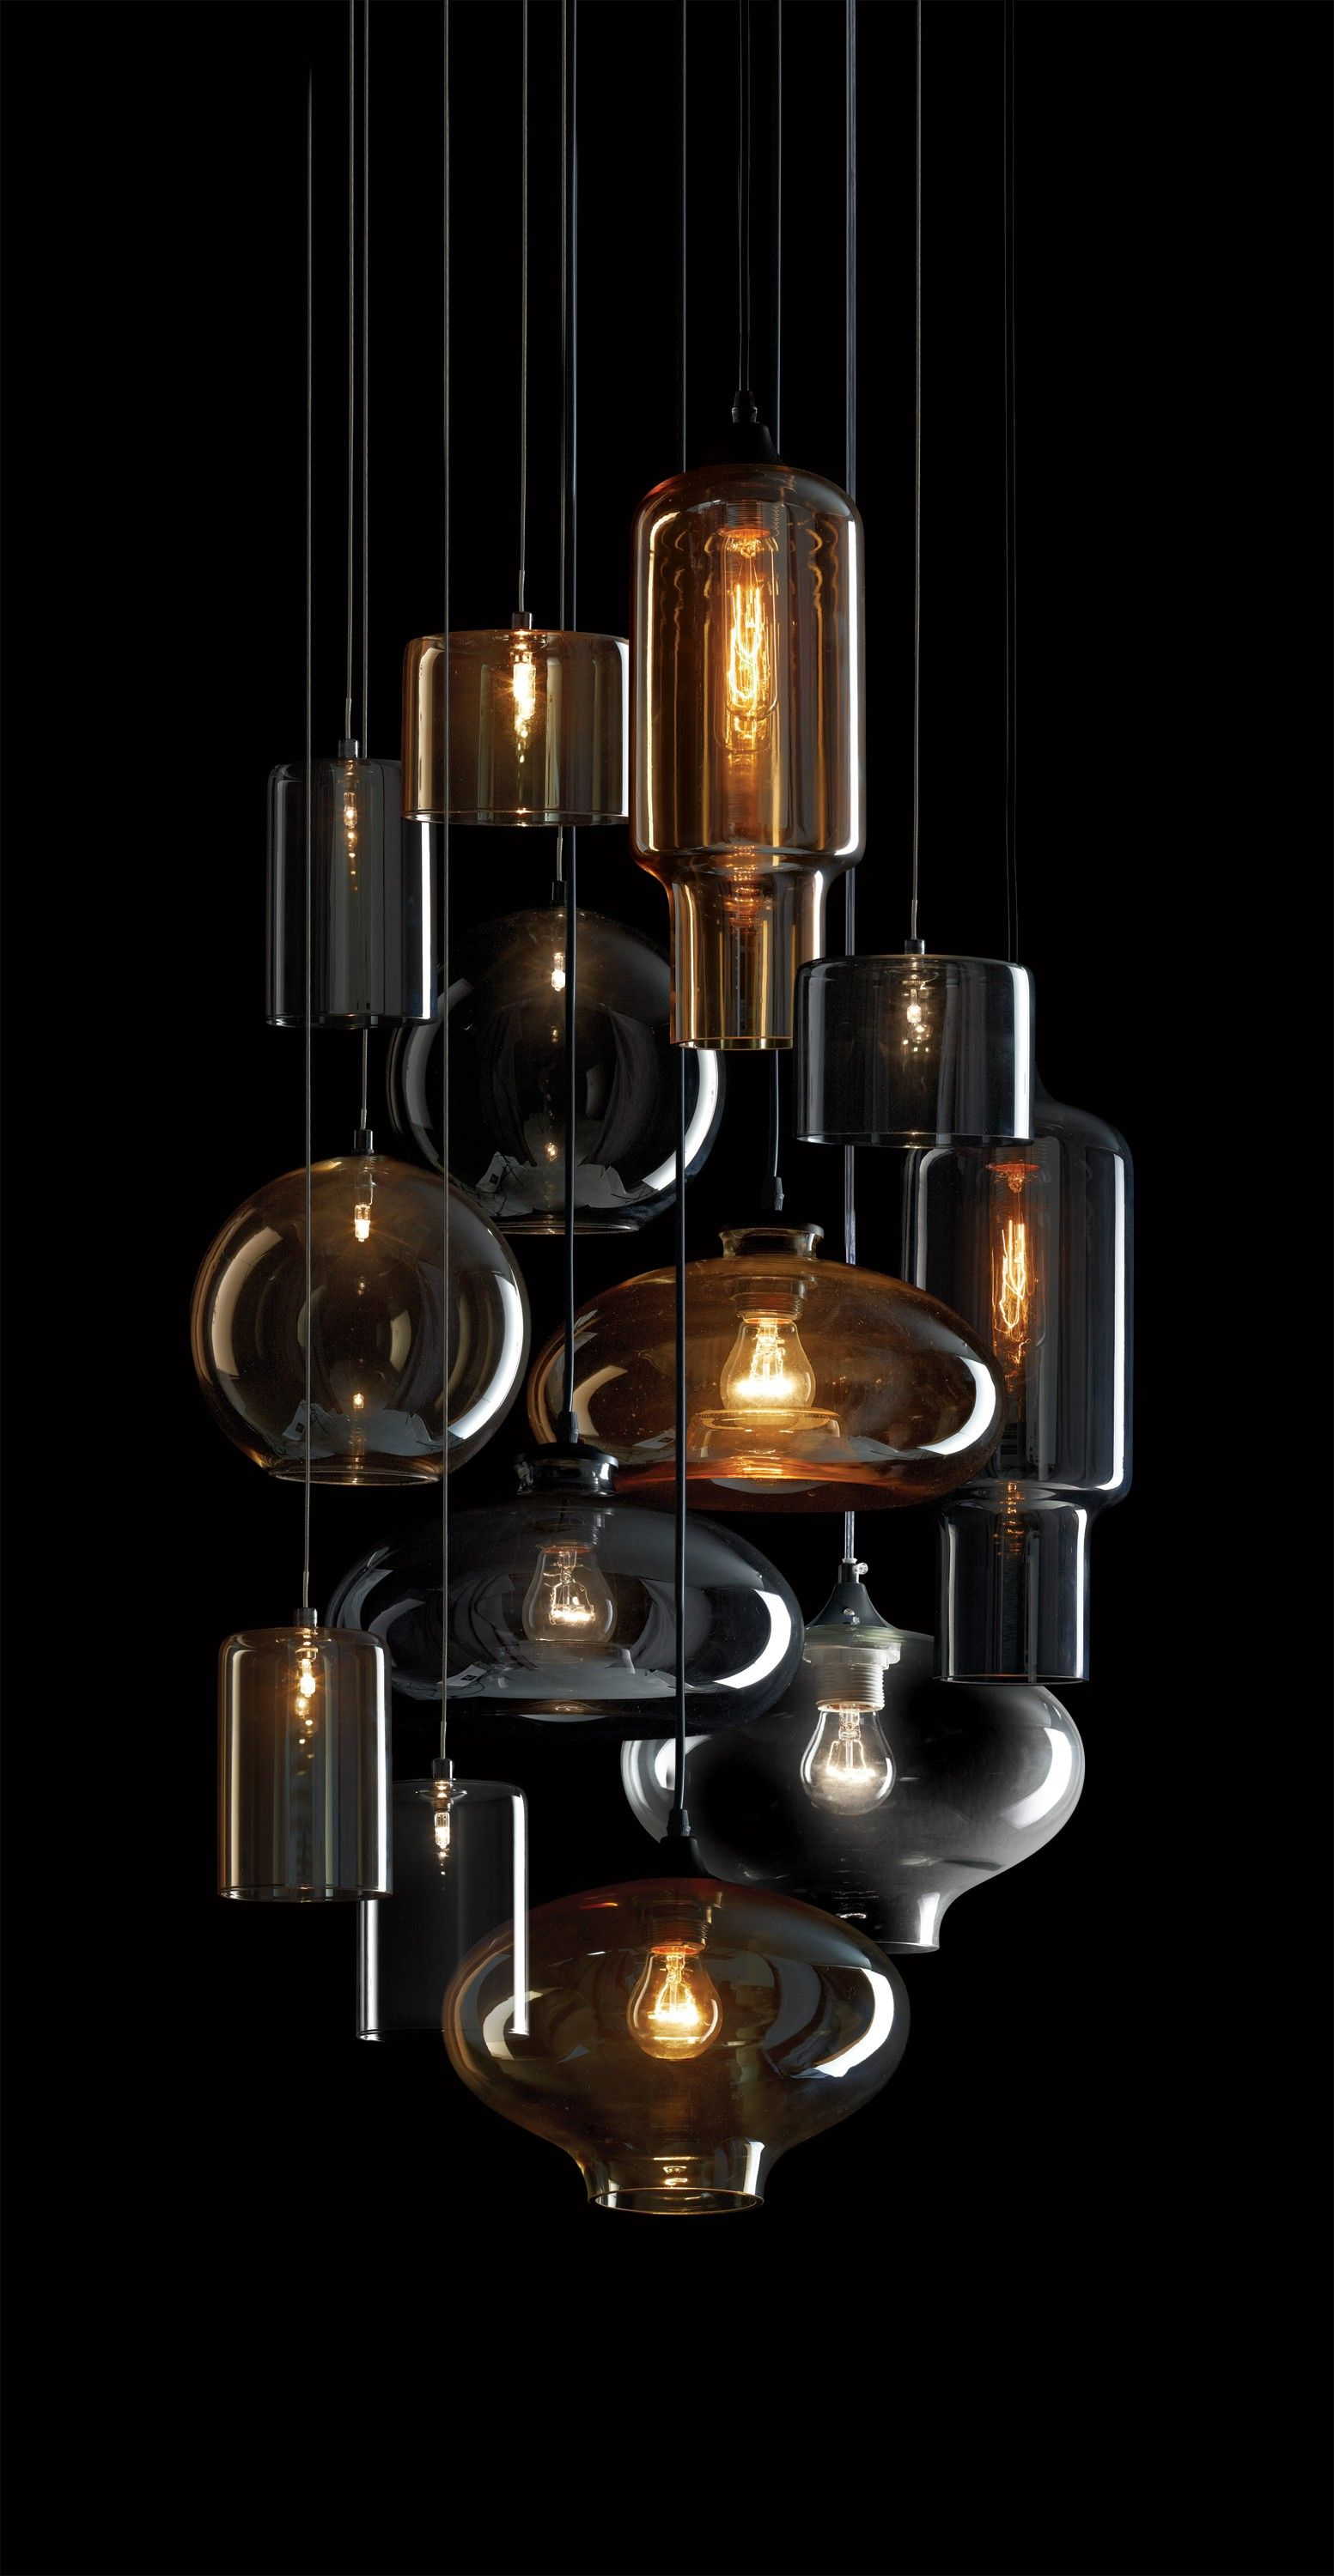 of glass for f sale antique open id chandeliers master pair milk lighting chandelier furniture img orb brass at pendant lights